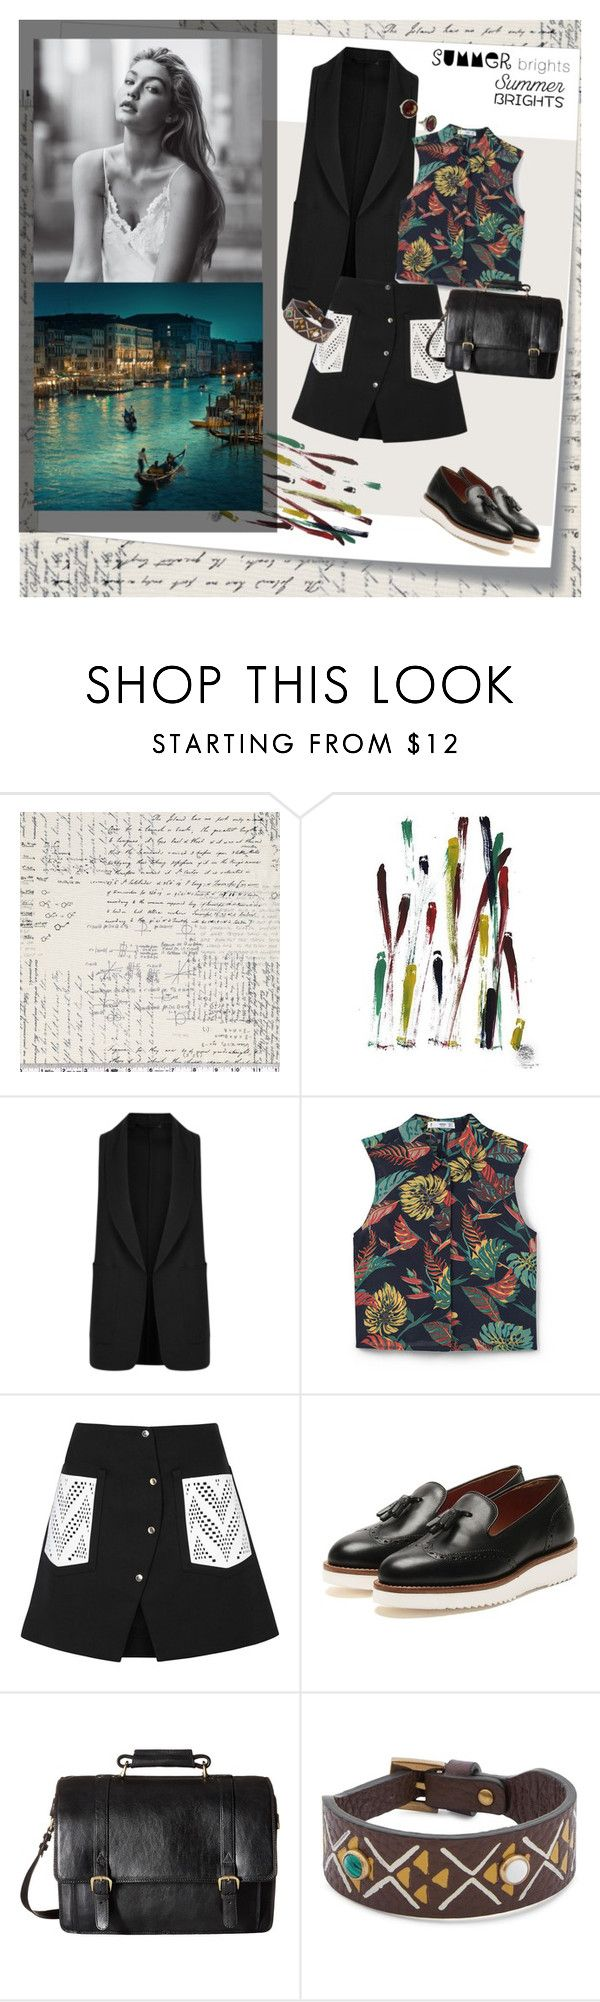 """""""Летние ночи..."""" by mariettamyan ❤ liked on Polyvore featuring Post-It, NOVICA, Alexander Wang, MANGO, Kenzo, Grenson, Scully and Valentino"""